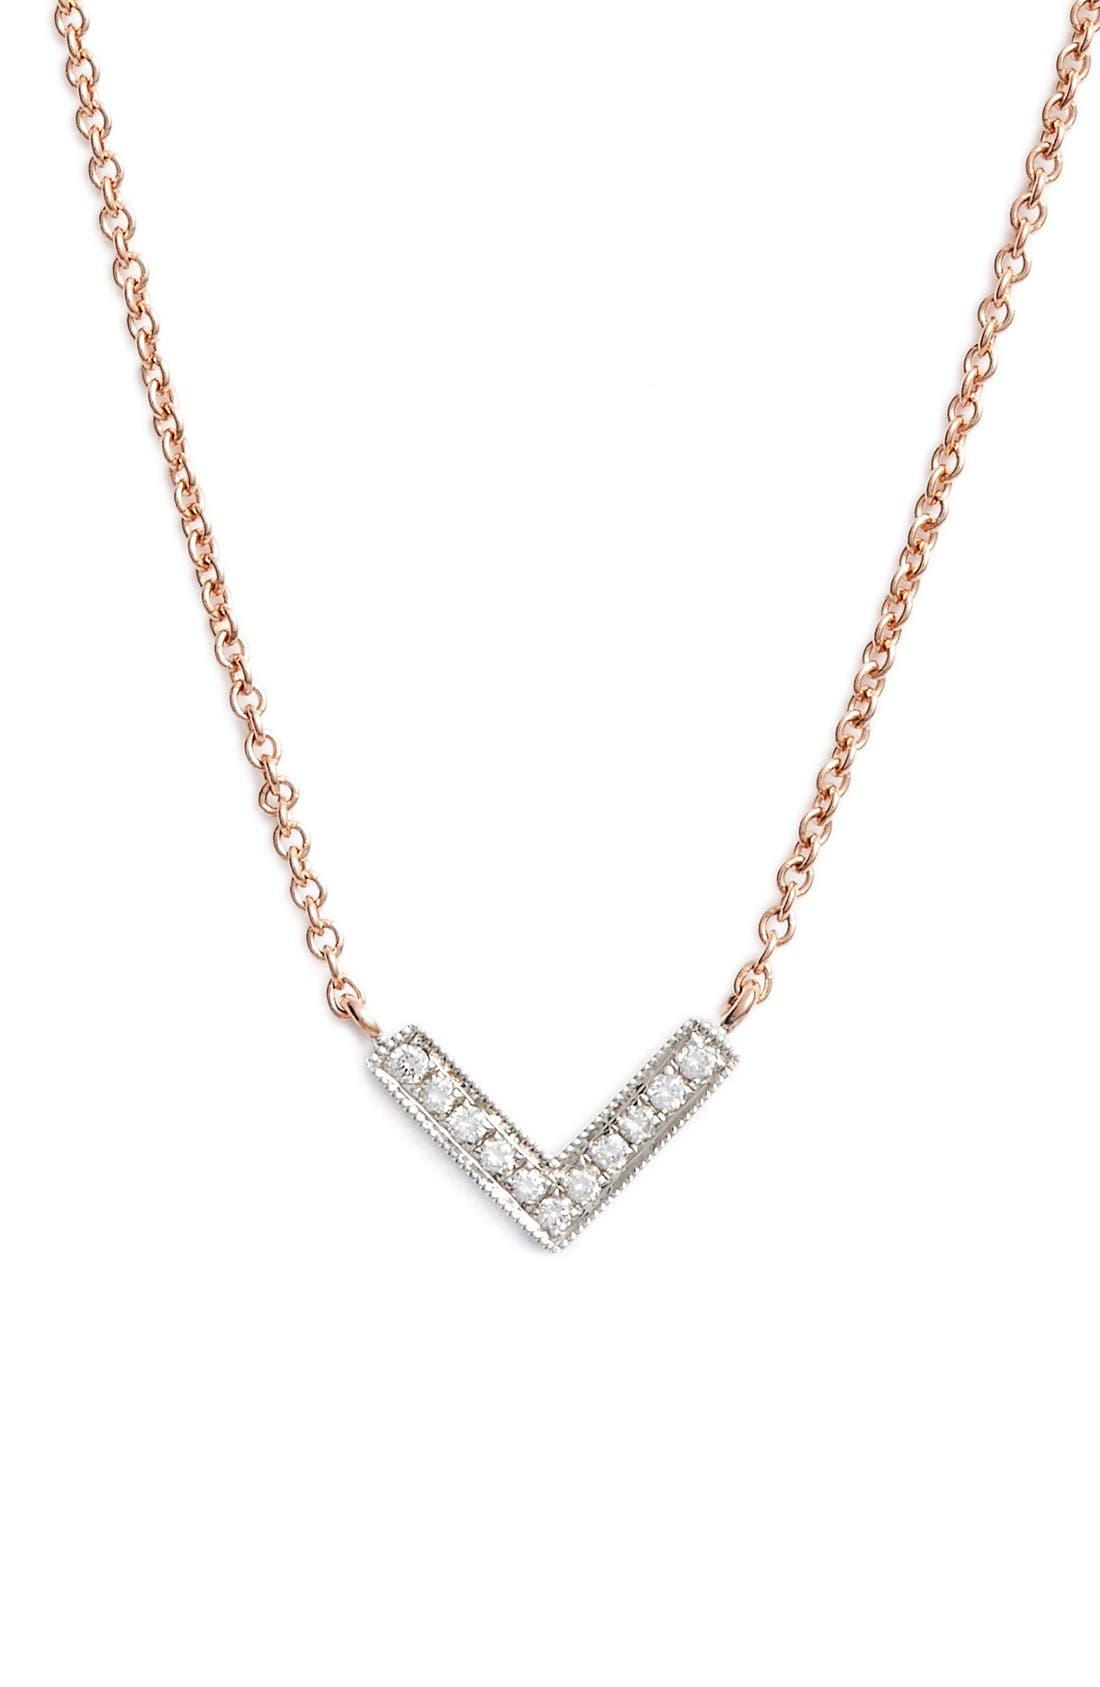 Dana Rebecca Designs 'Sylvie Rose' Diamond V Pendant Necklace